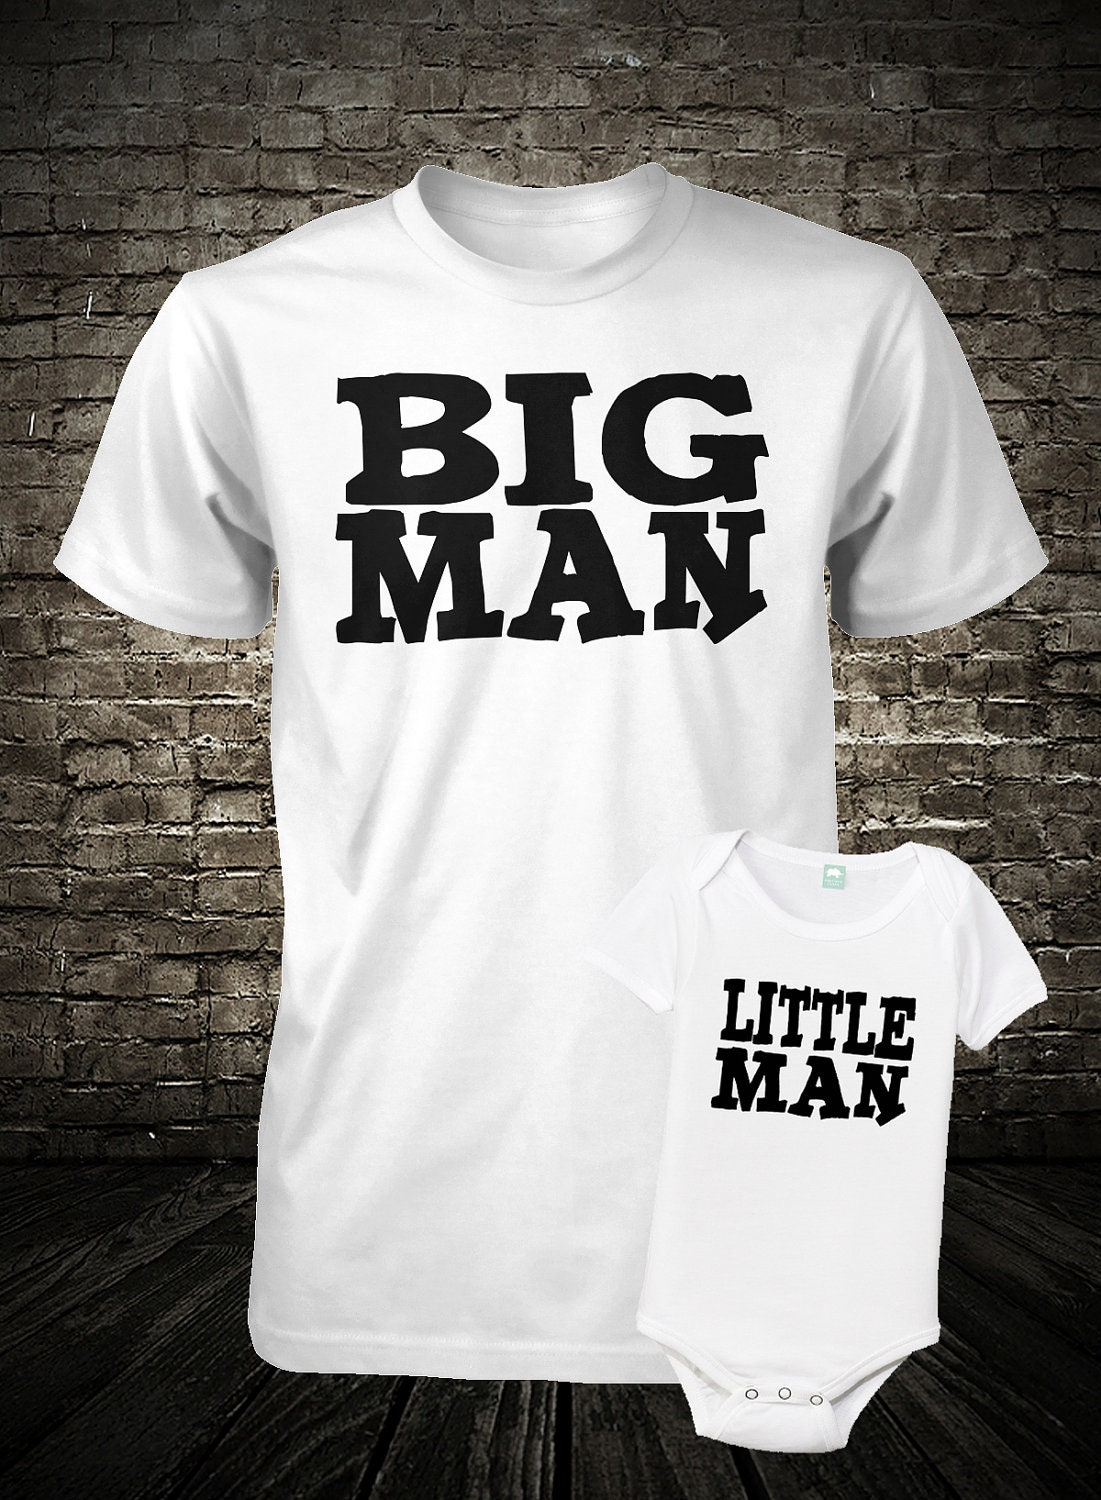 father and son shirt set big man little man boys kids tee. Black Bedroom Furniture Sets. Home Design Ideas